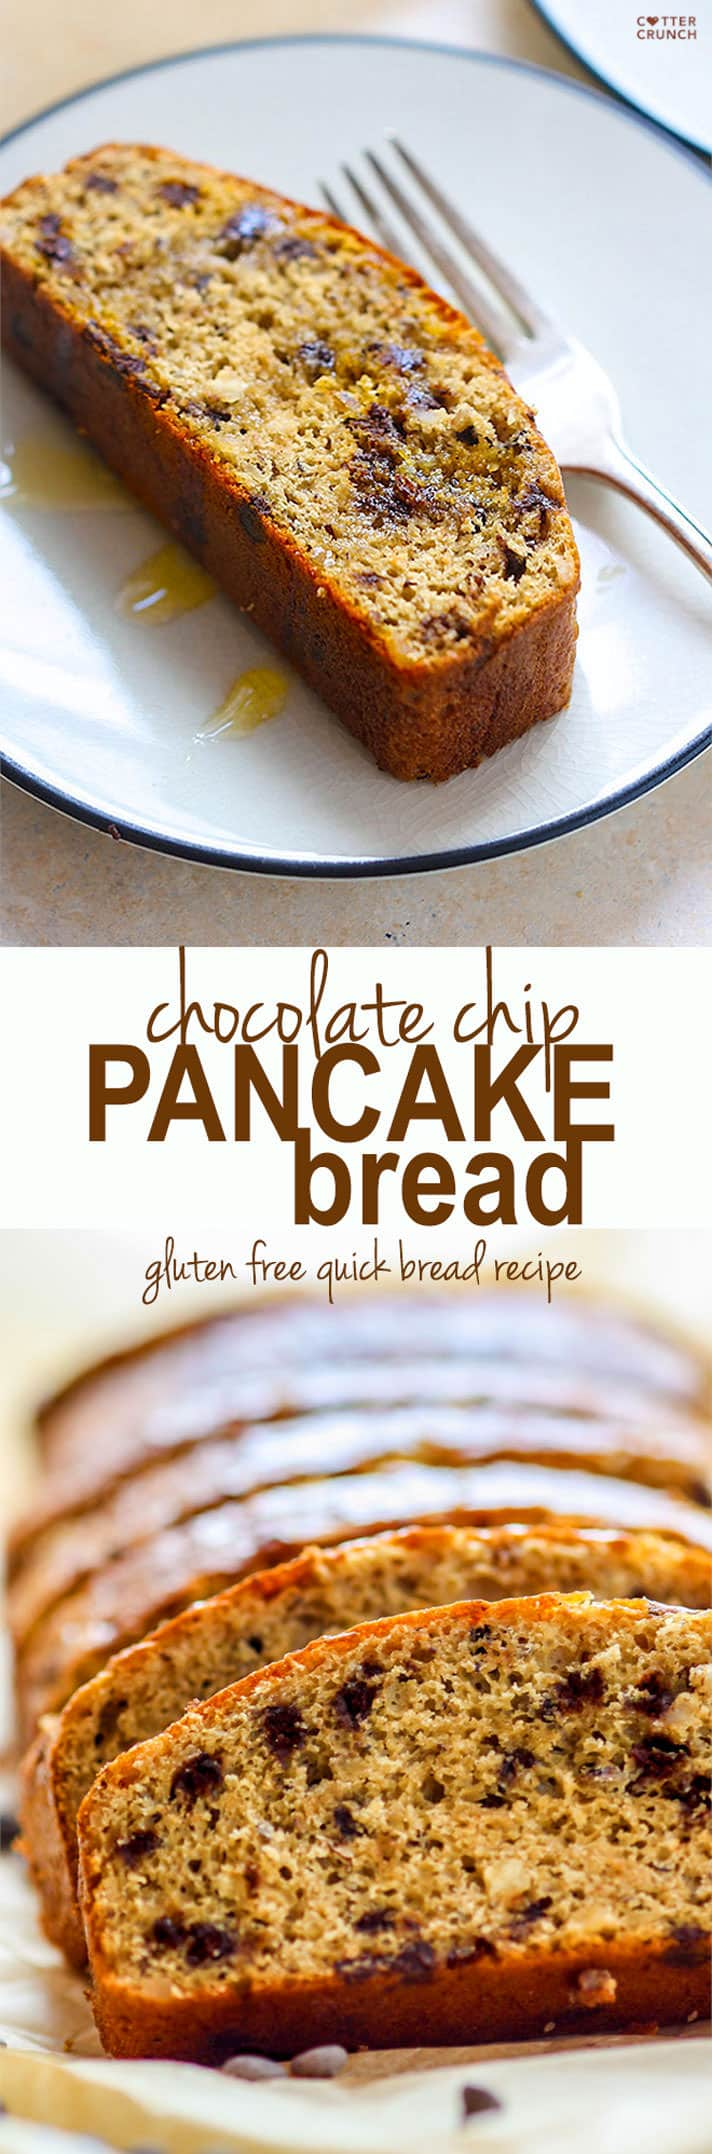 "Gluten Free Chocolate CHip pancake ""quick"" bread. Super easy to make, healthy, great for desserts, breakfast at home or on the go. Easy to make Dairy free and always kid friendly!! #cottercrunch"